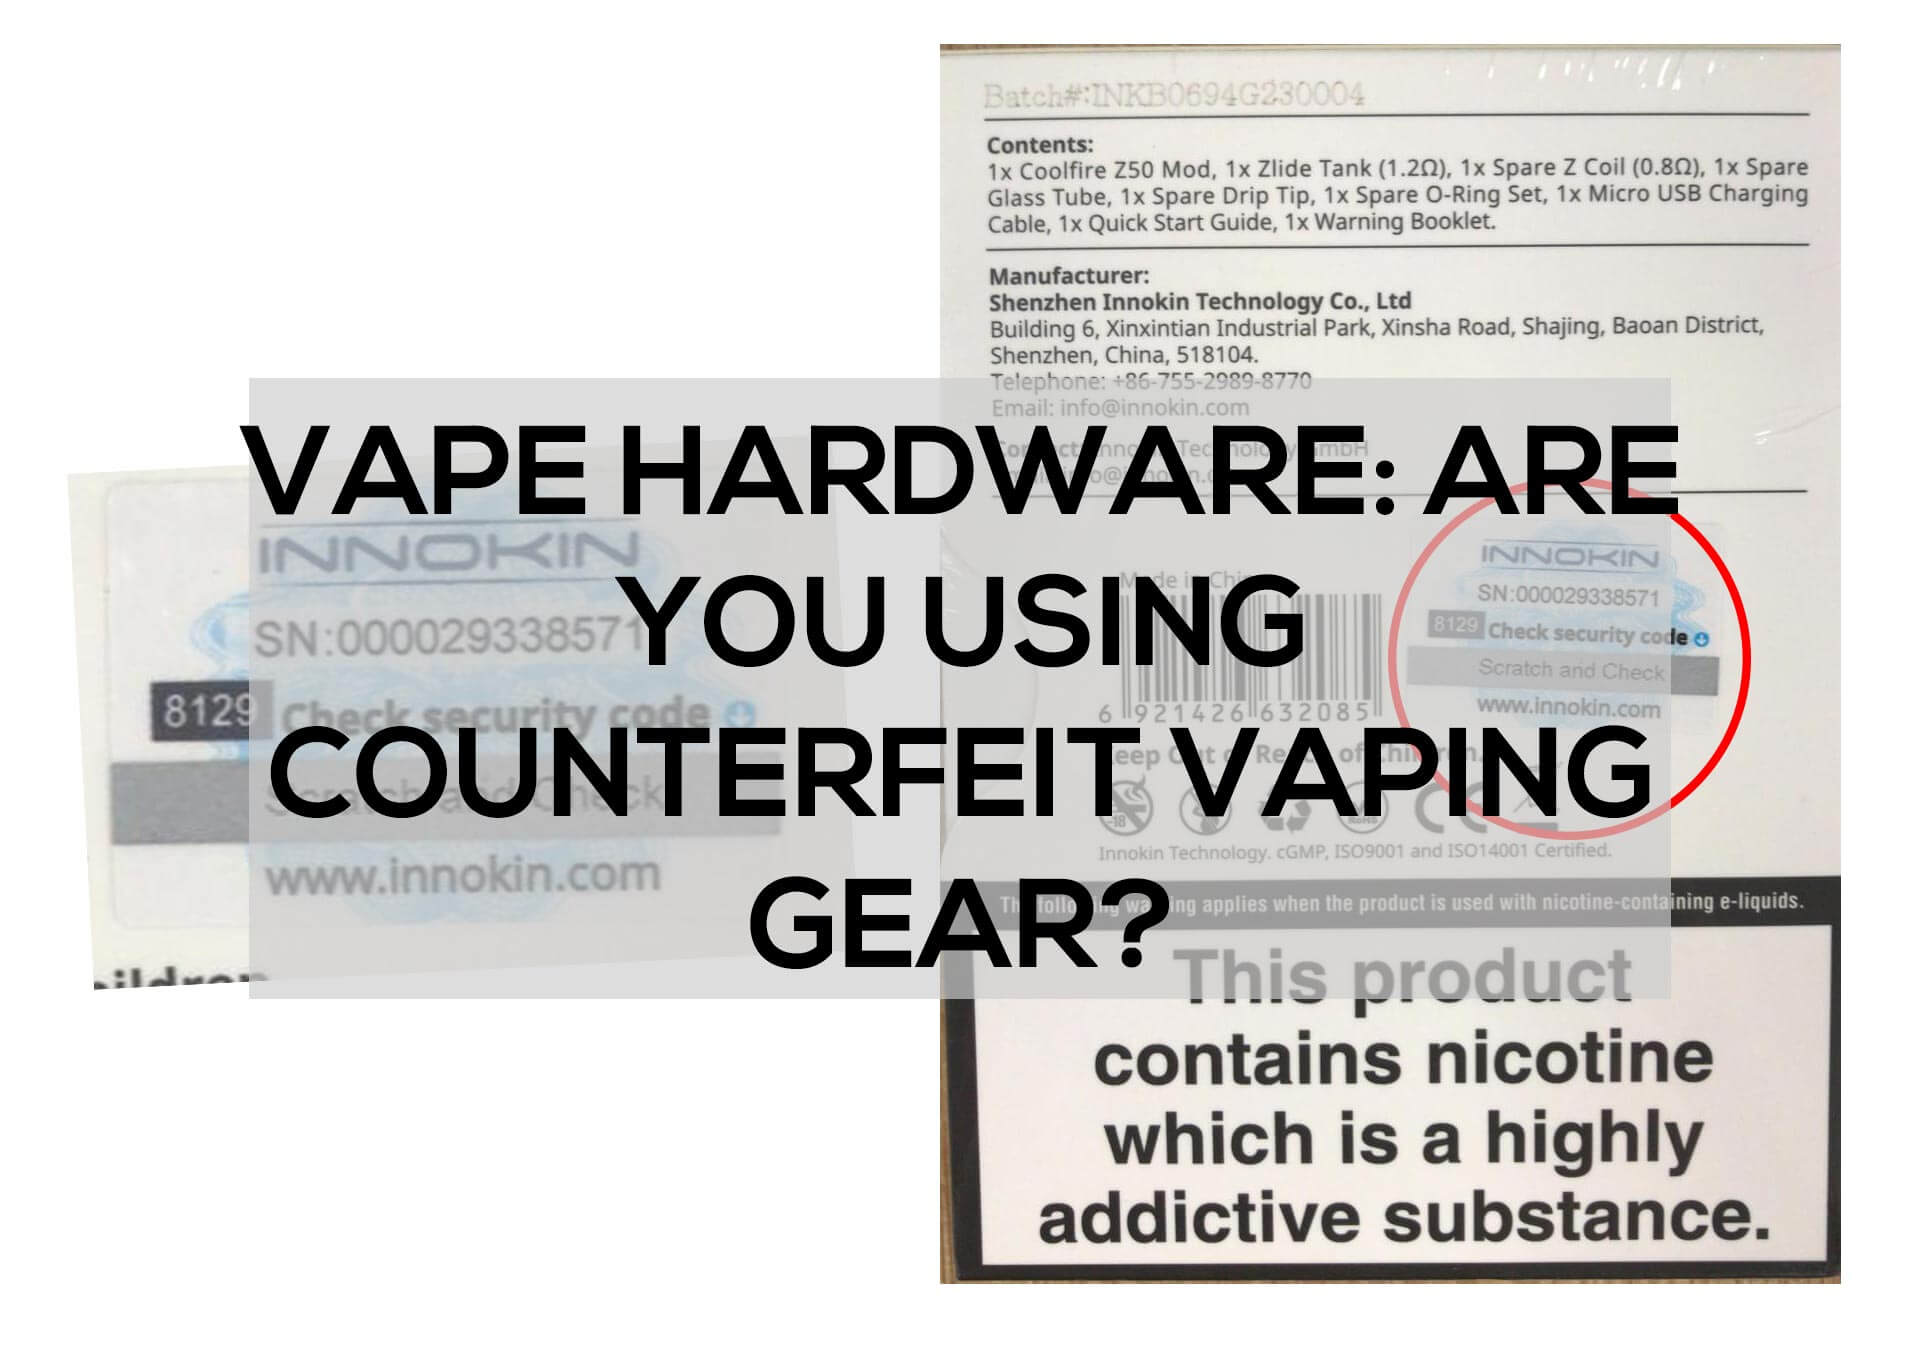 Vape-Hardware--Are-You-using-Counterfeit-Vaping-Gear-